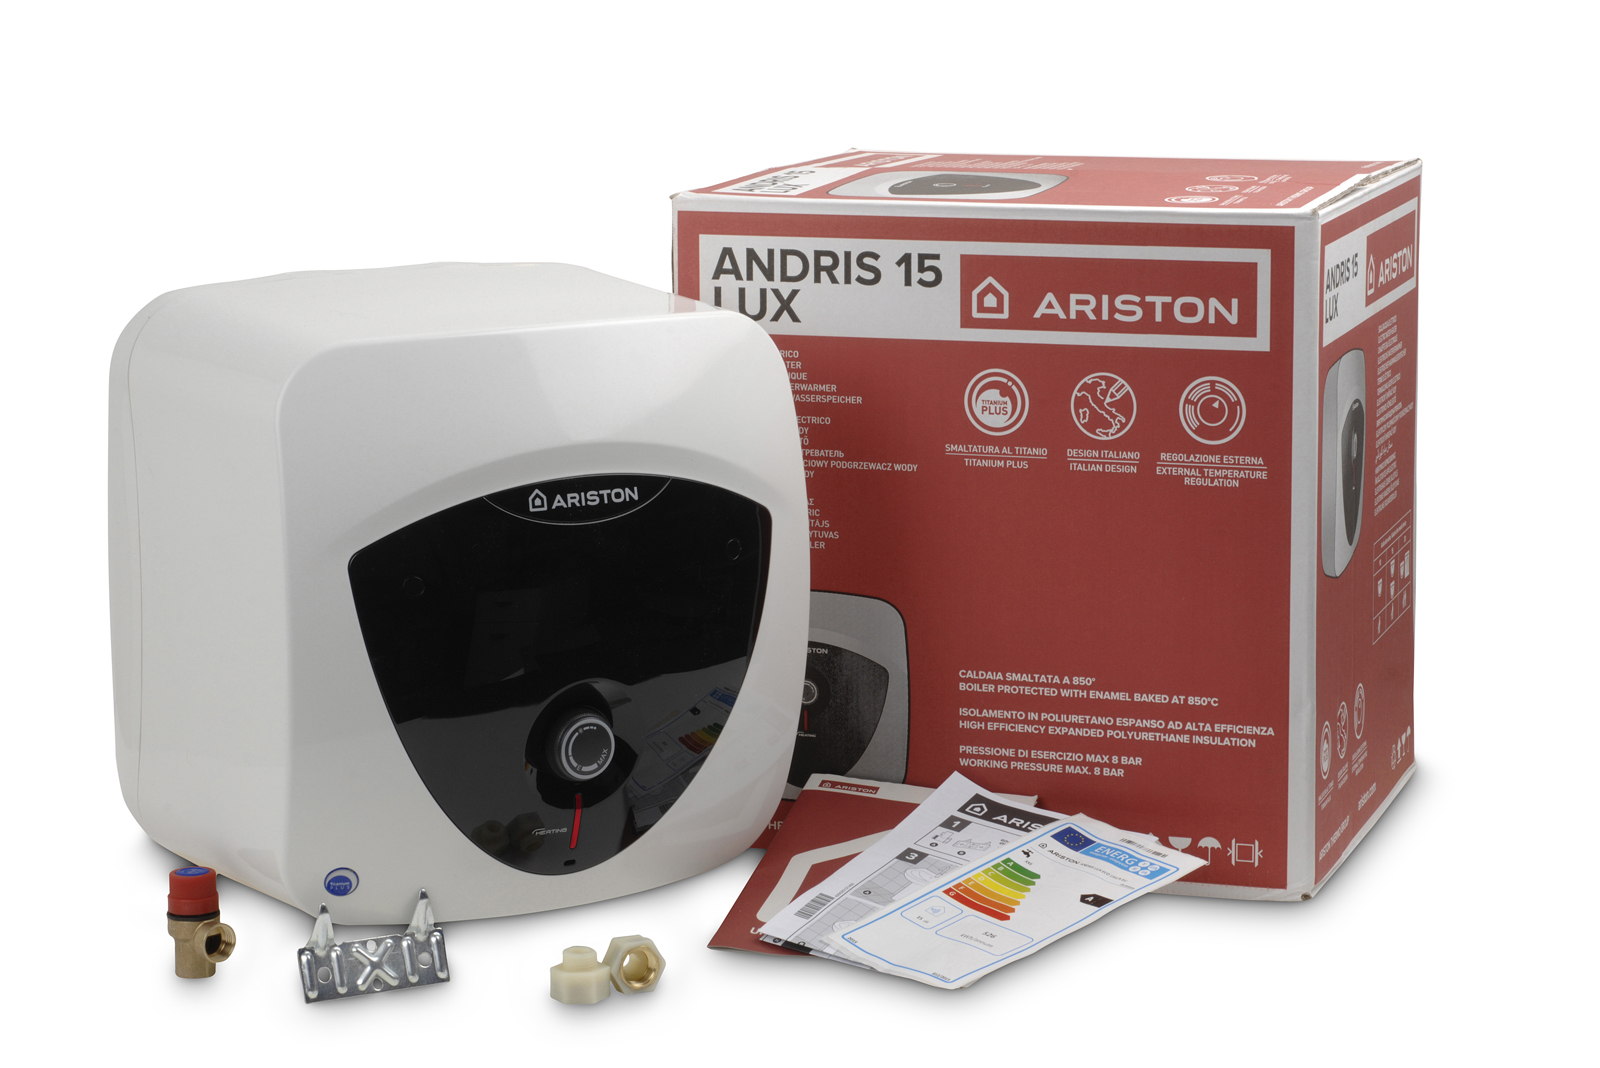 Ariston's new unvented electric water heater